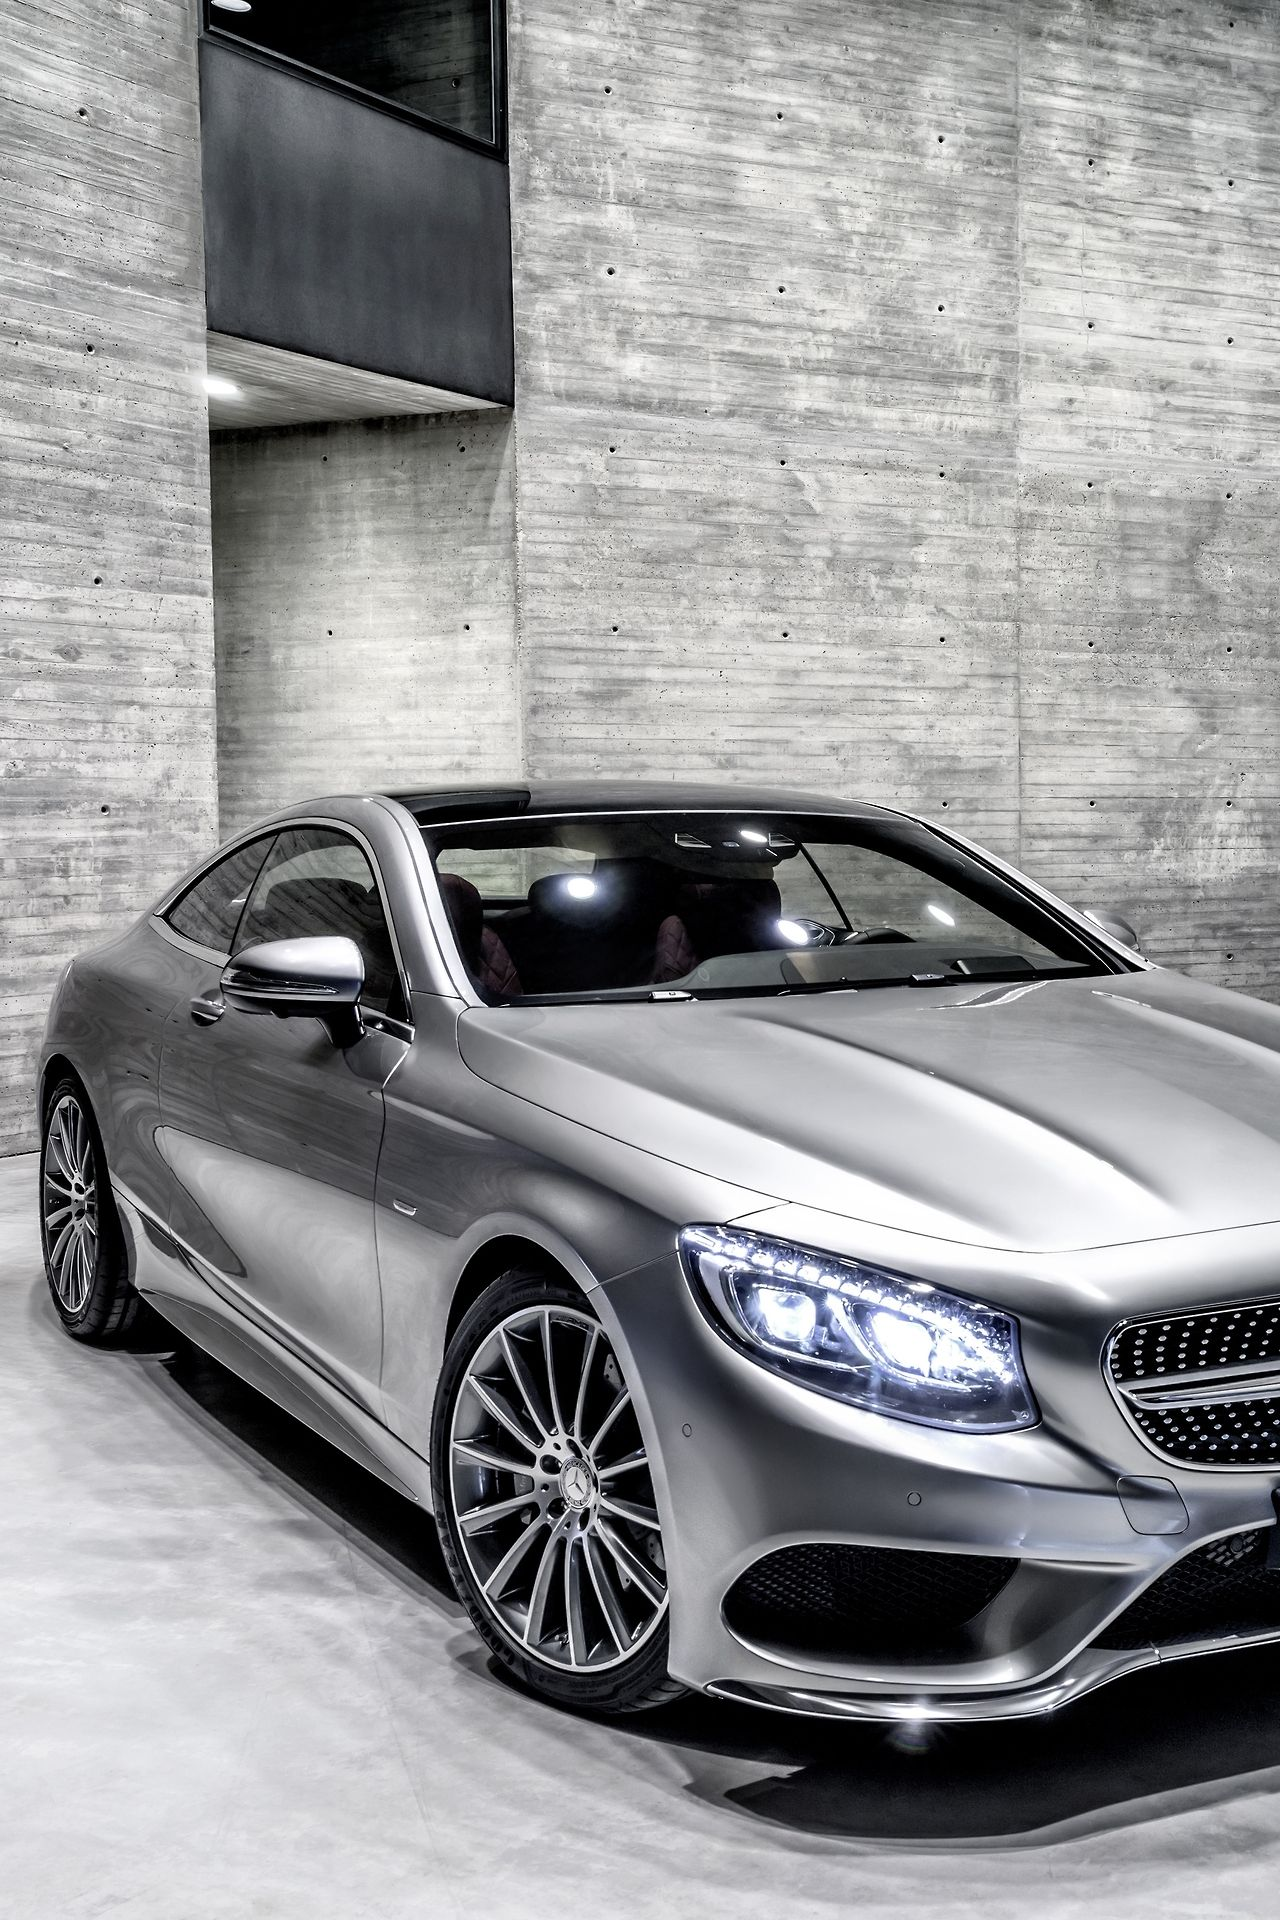 Mercedes Benz S Class Coupe Goals Luxury Cars Benz S Benz S